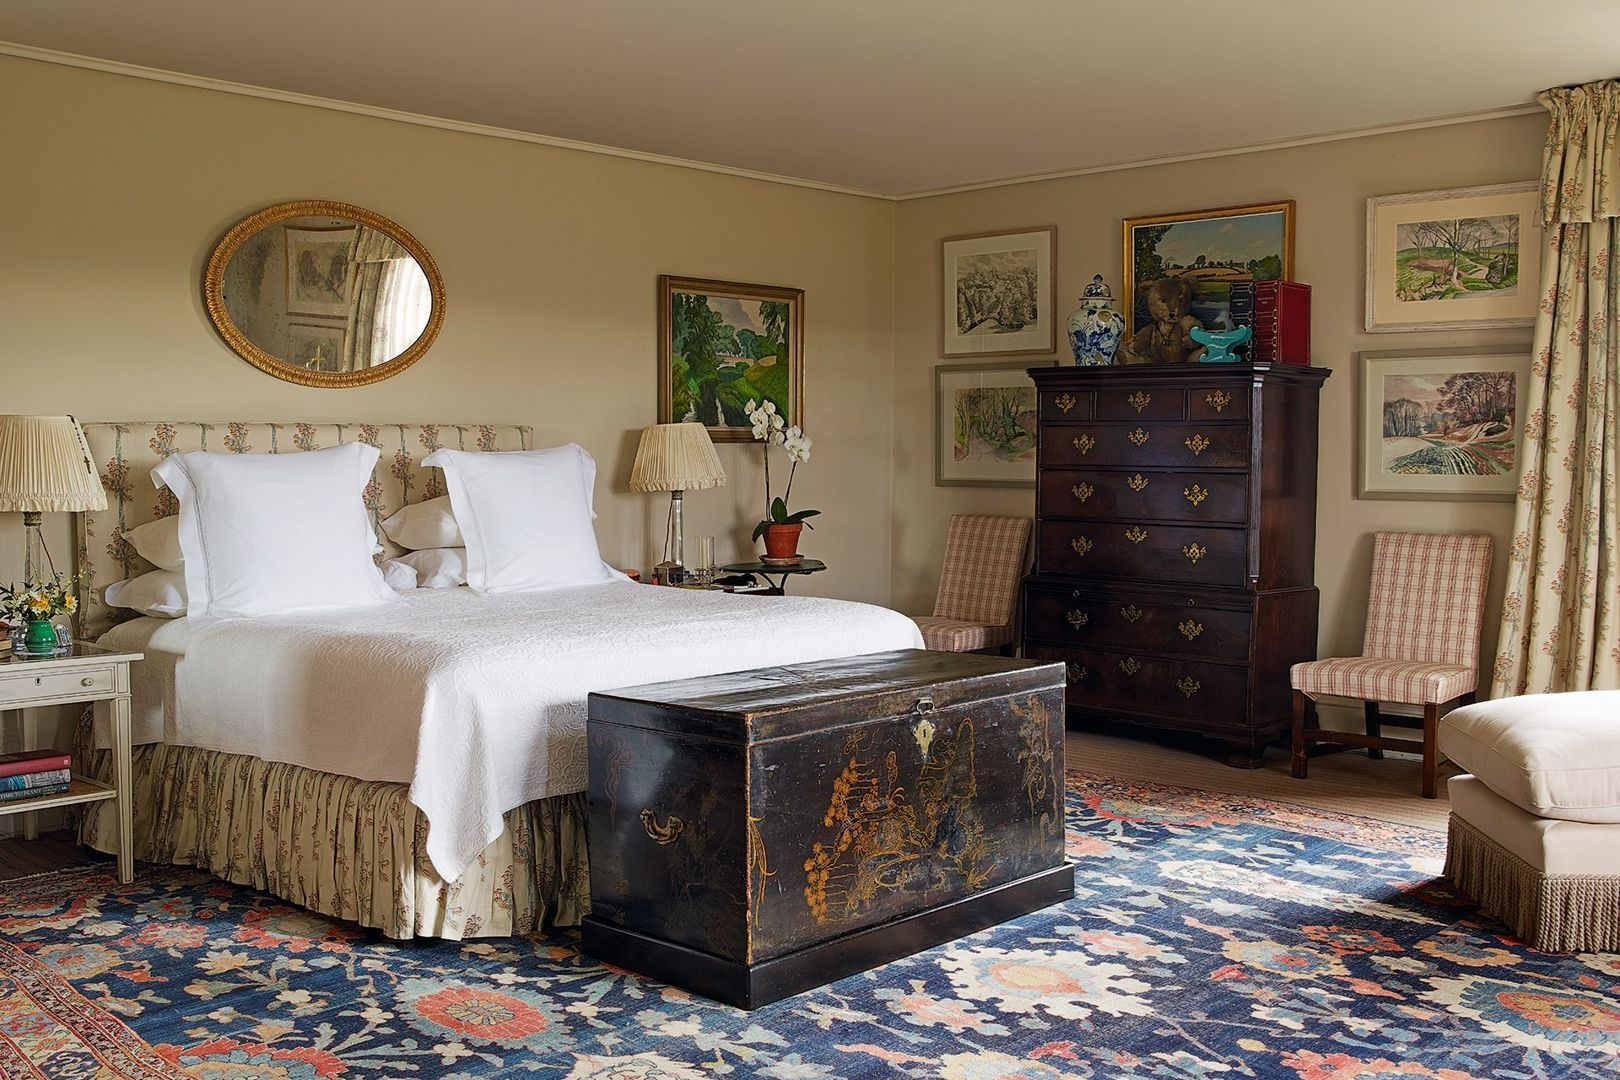 English country bedroom ideas  Traditional bedroom, English